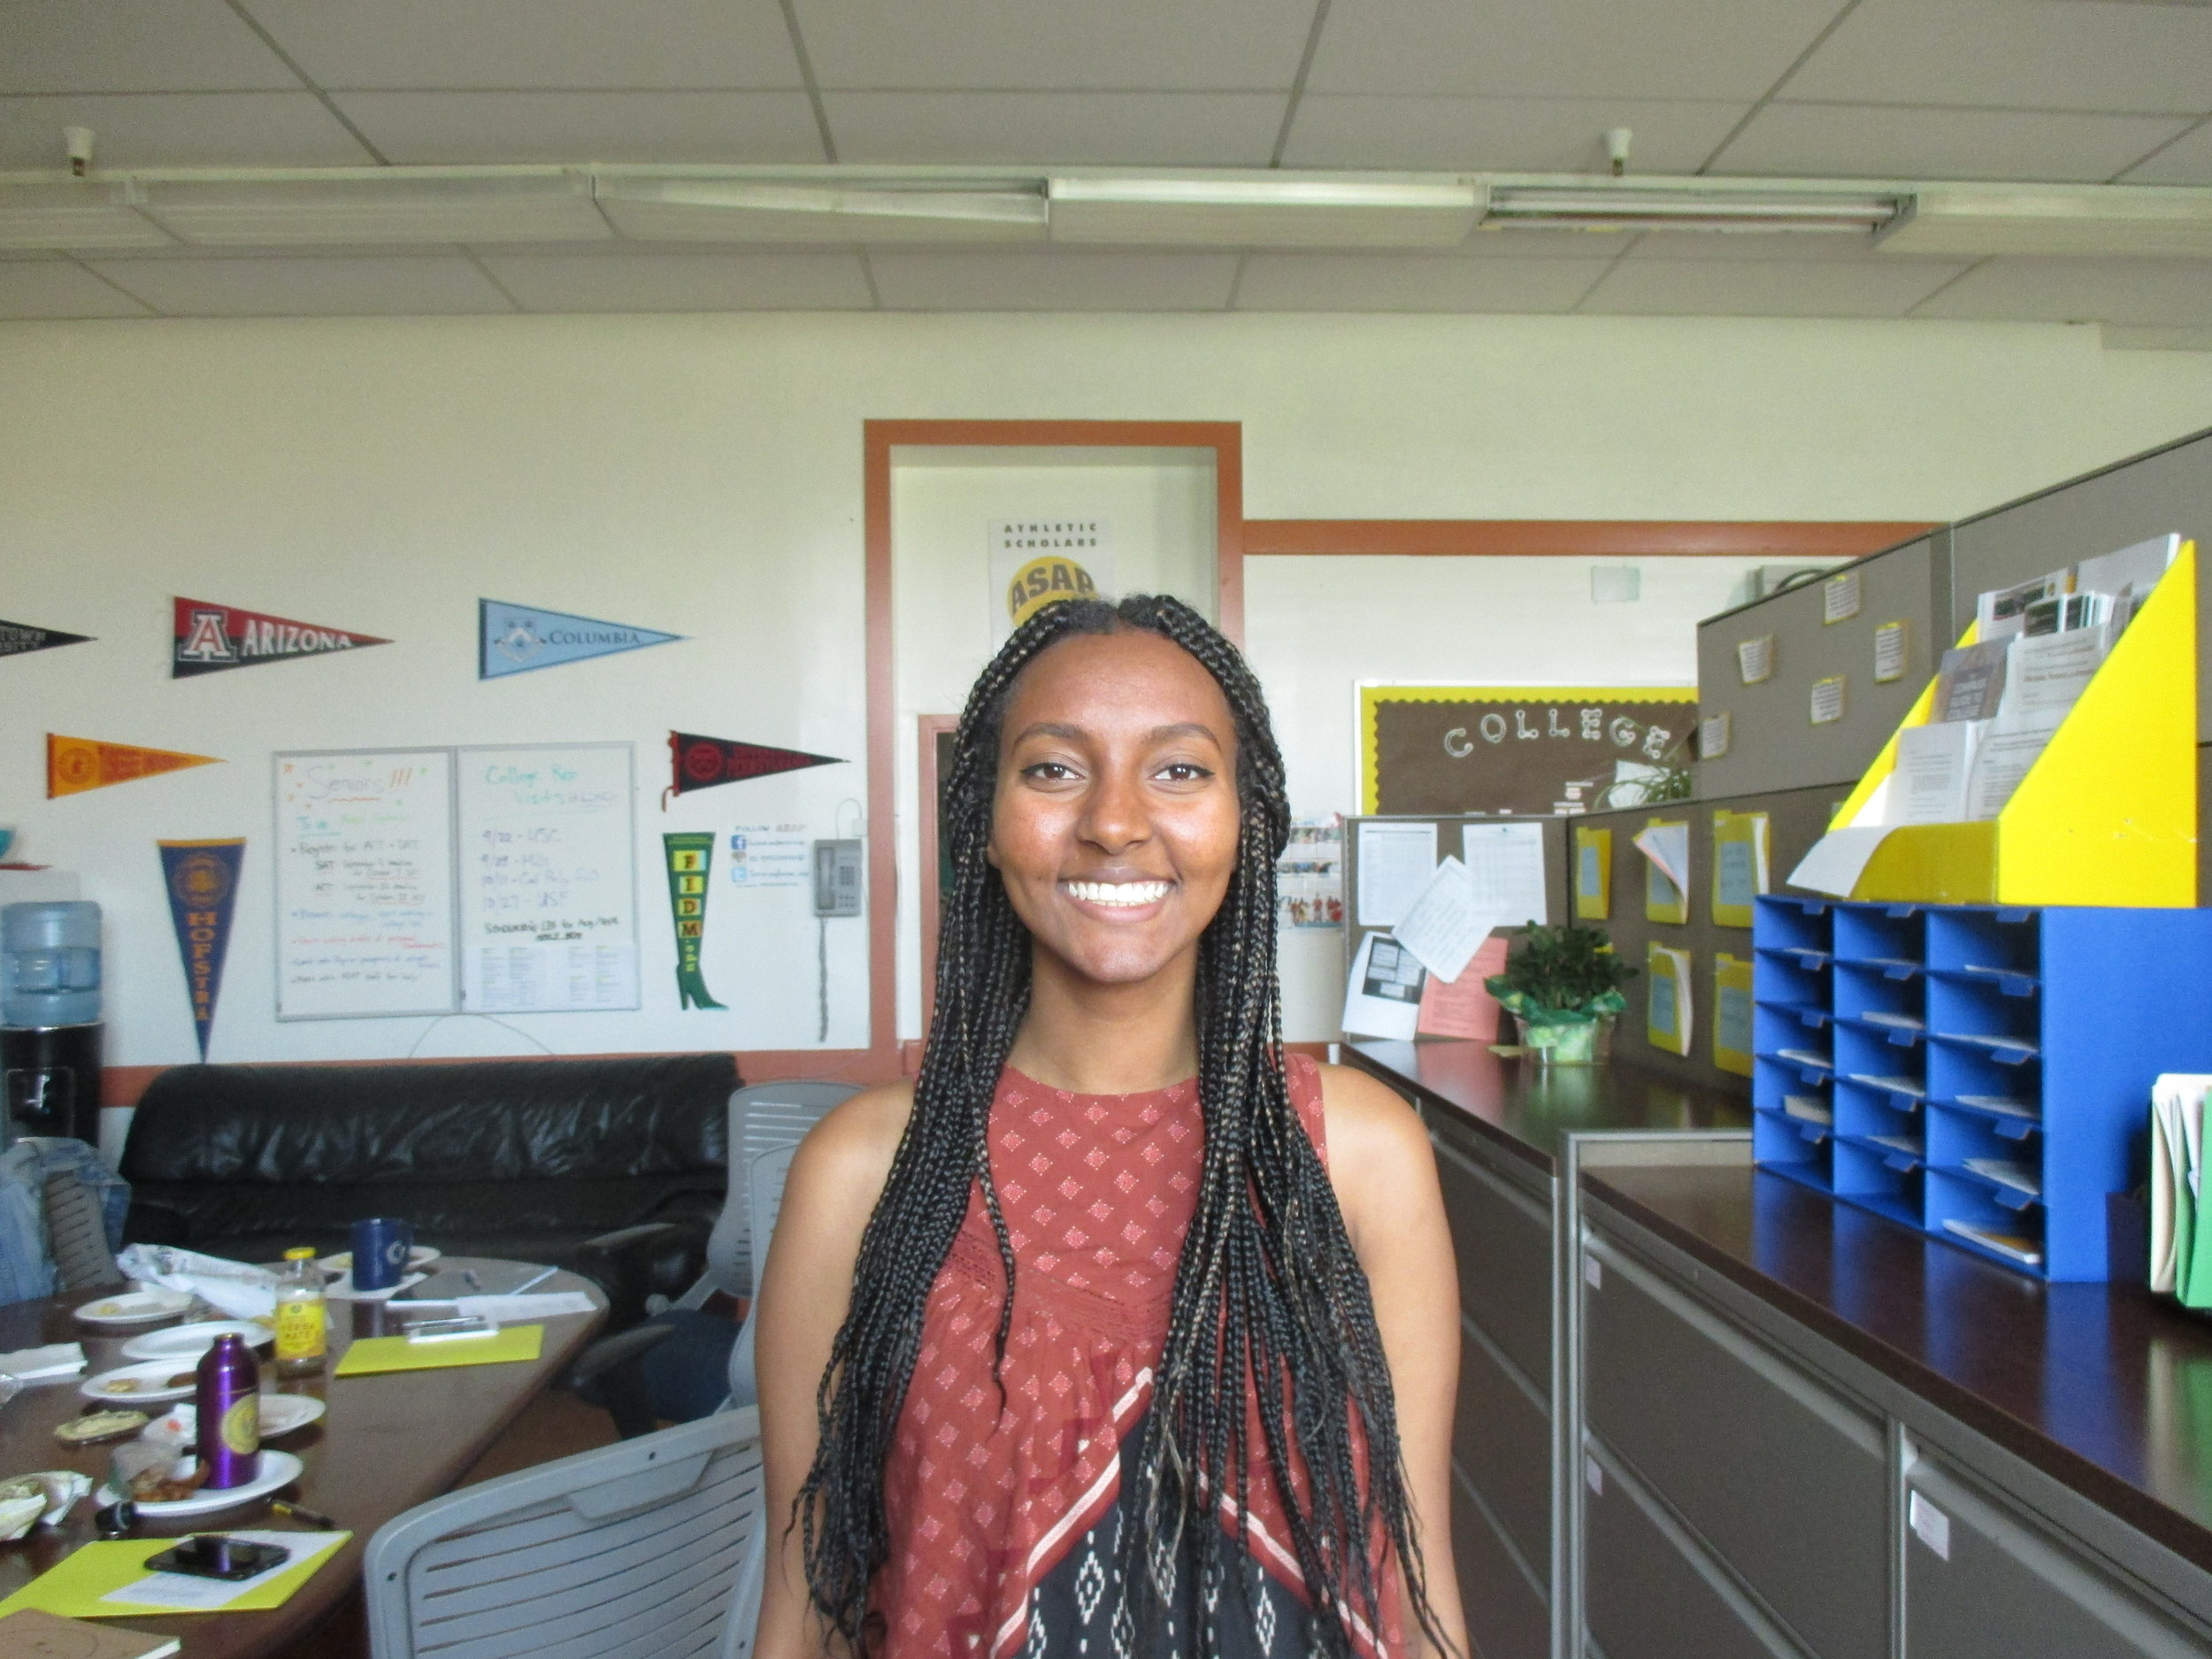 Ruta Gebrihiwet is a 2013 ASAP graduate. She graduated from UC Santa Barbara with a History Degree. She is a Promise Scholar and is currently a College Success Advisor.